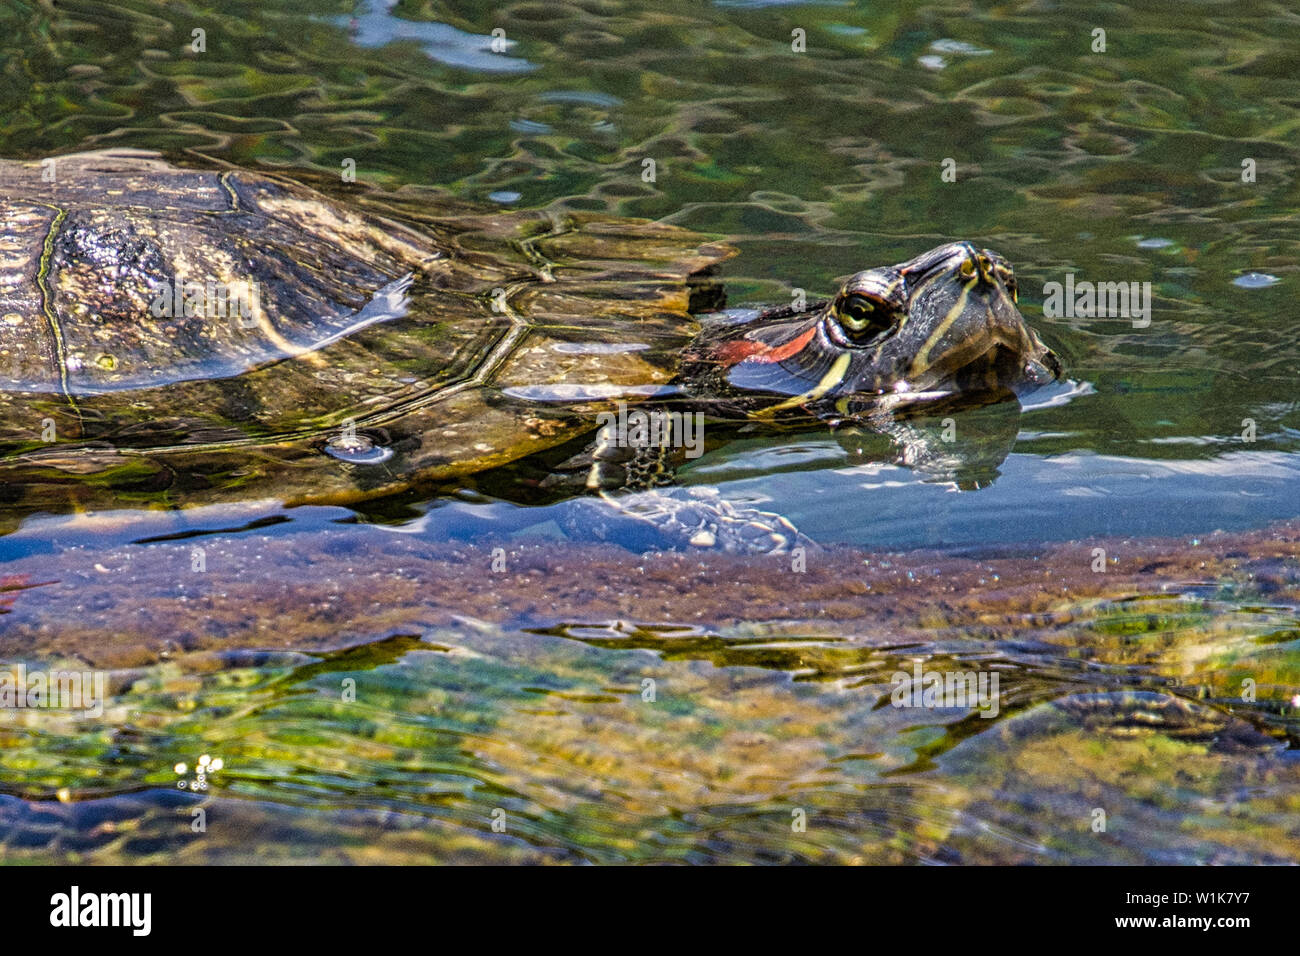 Another shot of the turtle in the pond at the Hawaiian Village resort in Honolulu. - Stock Image